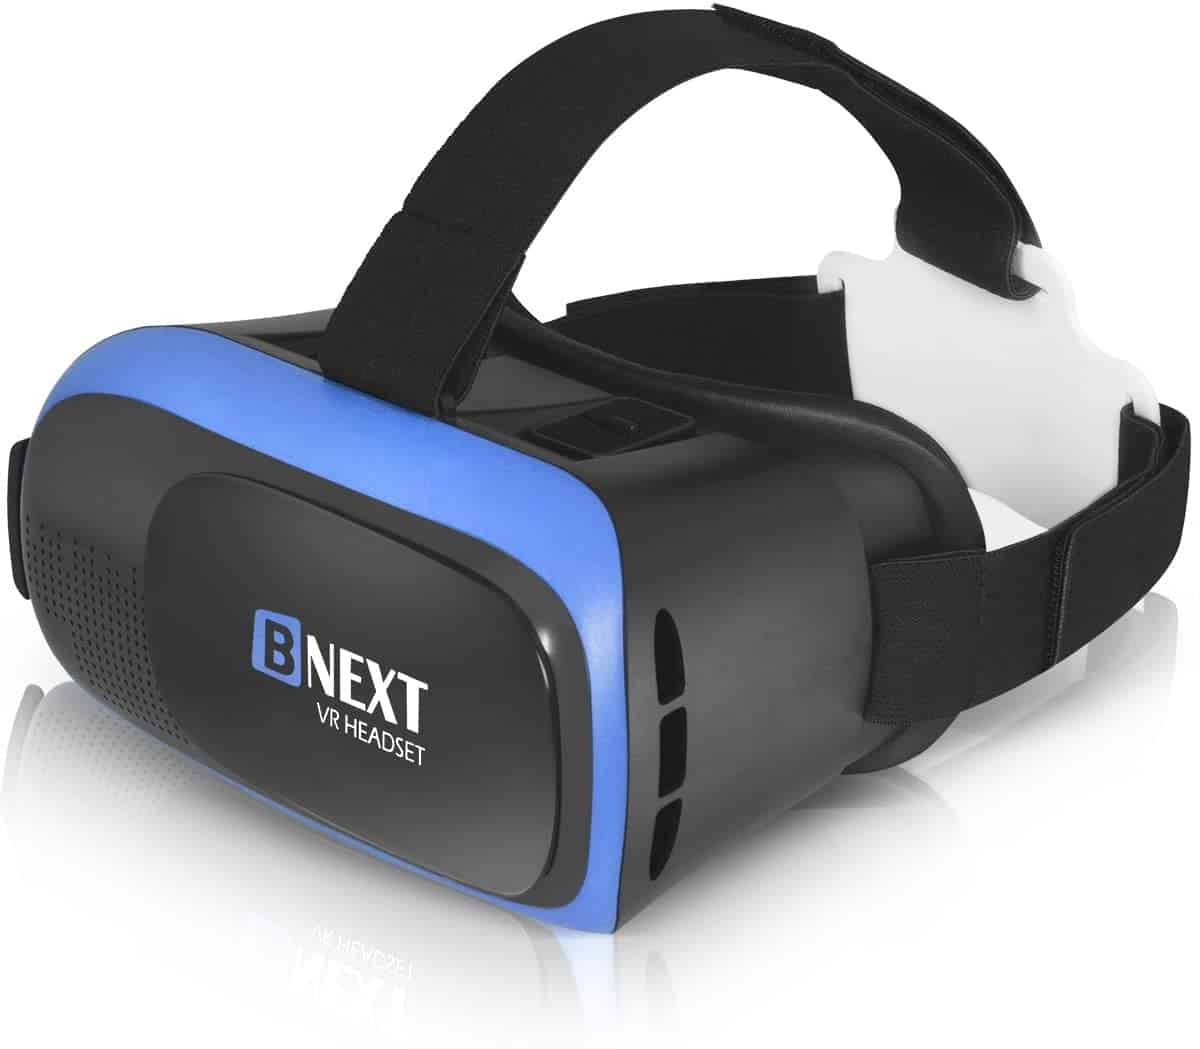 BNEXT Store VR Headset